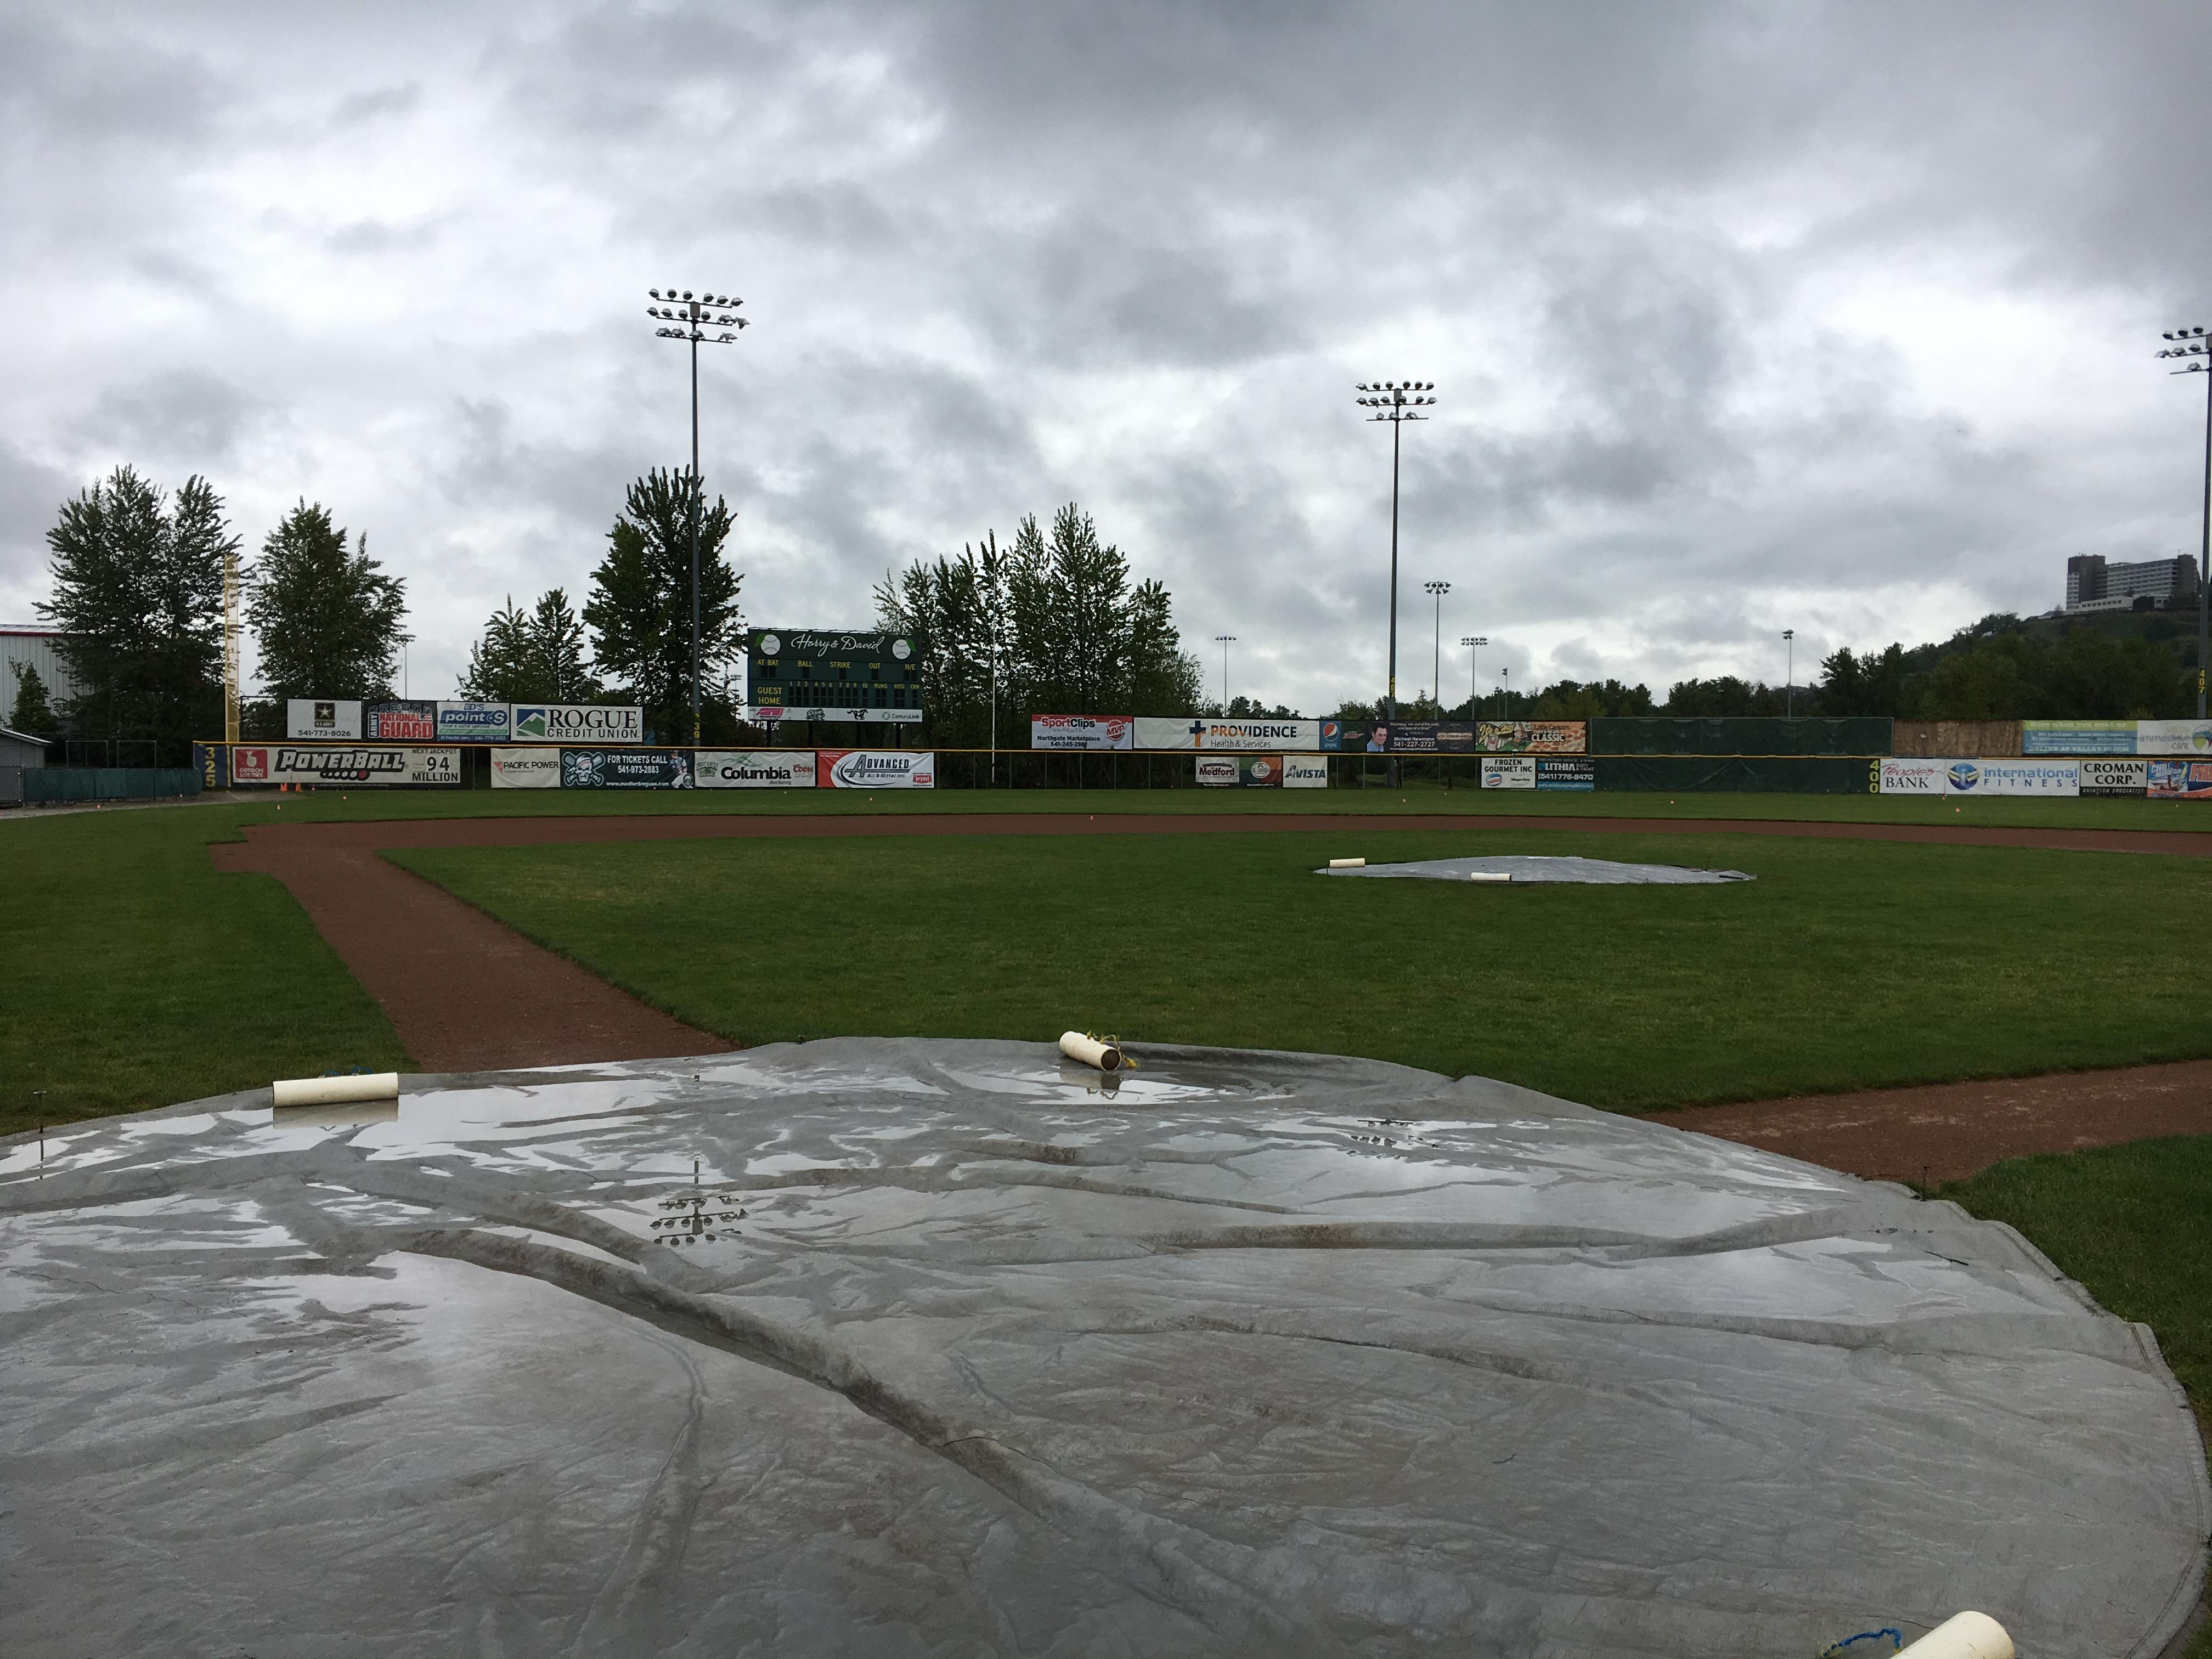 Rain falling on Harry & David Field with the Rogues set to open May 30th. (KTVL/Aaron Nilsson)